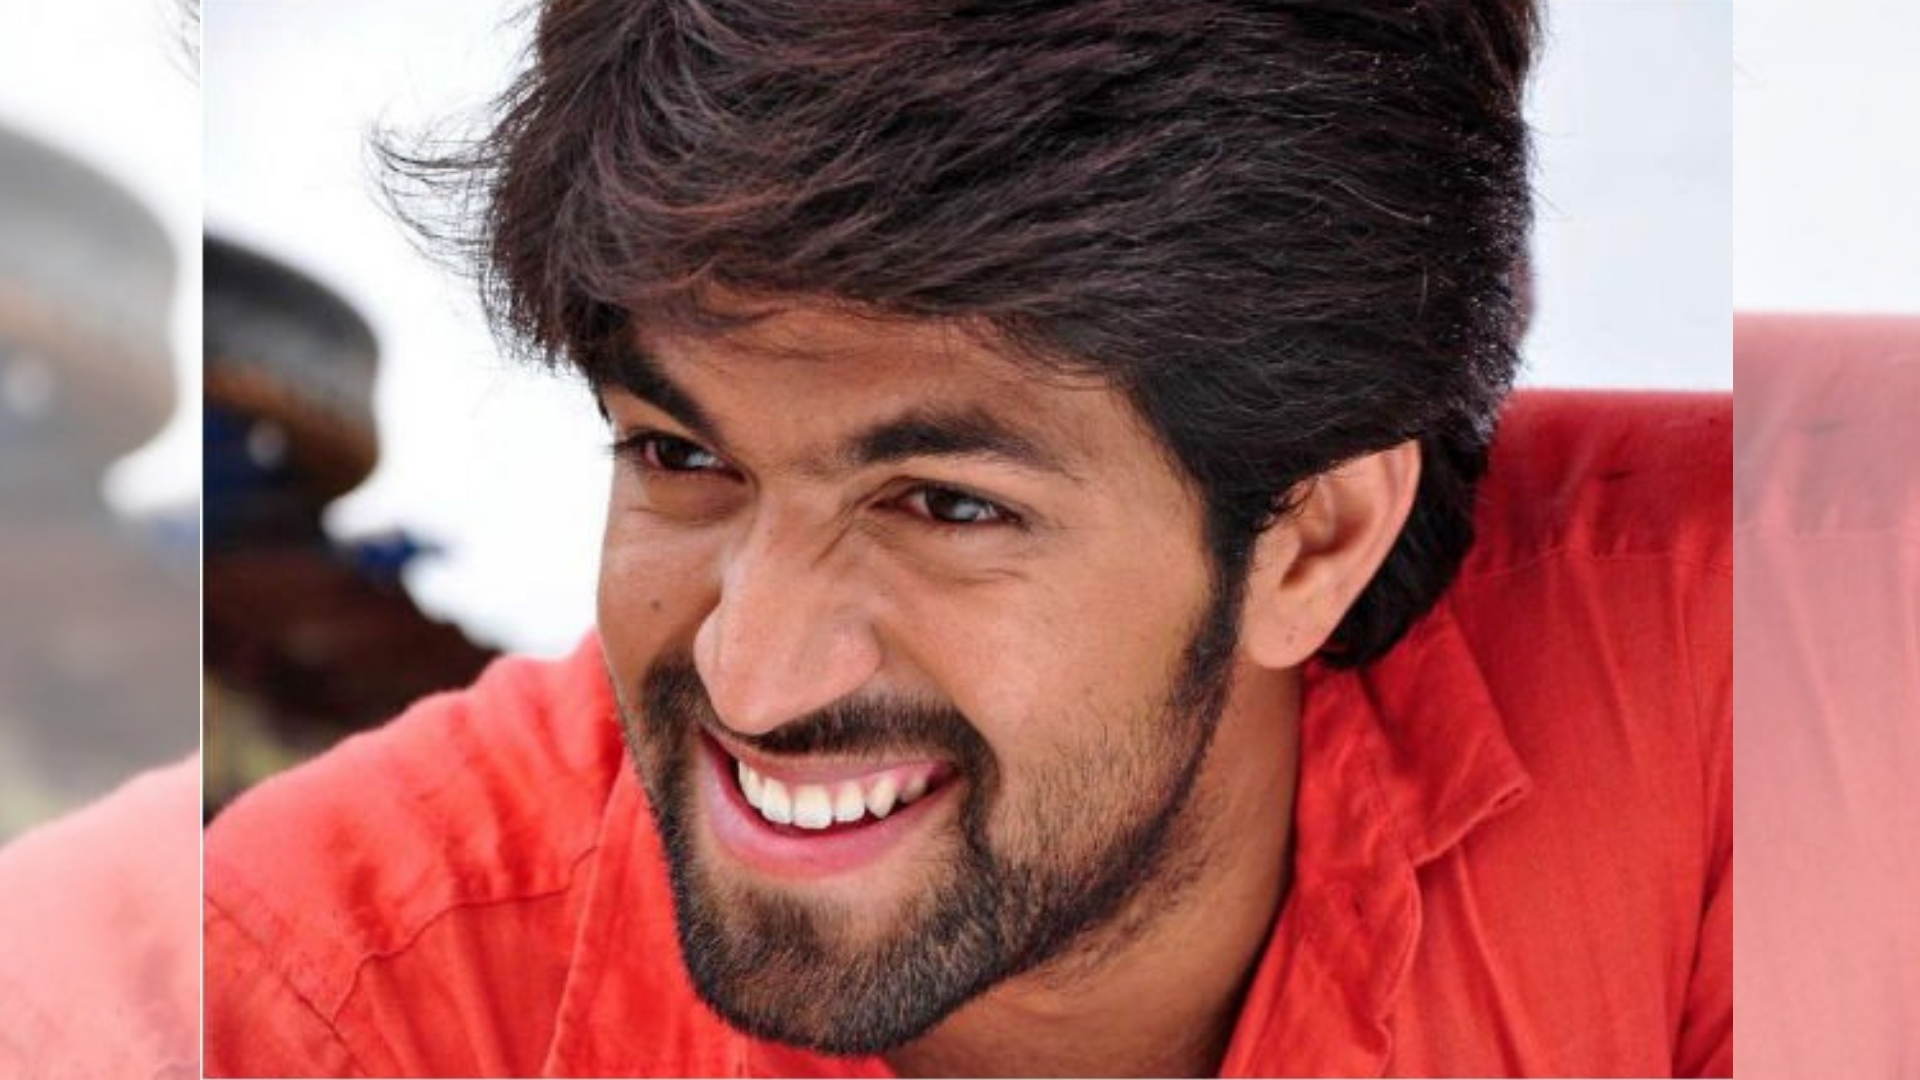 Kgf Star Yash Gives Birthday Celebrations A Miss But Gears Up For